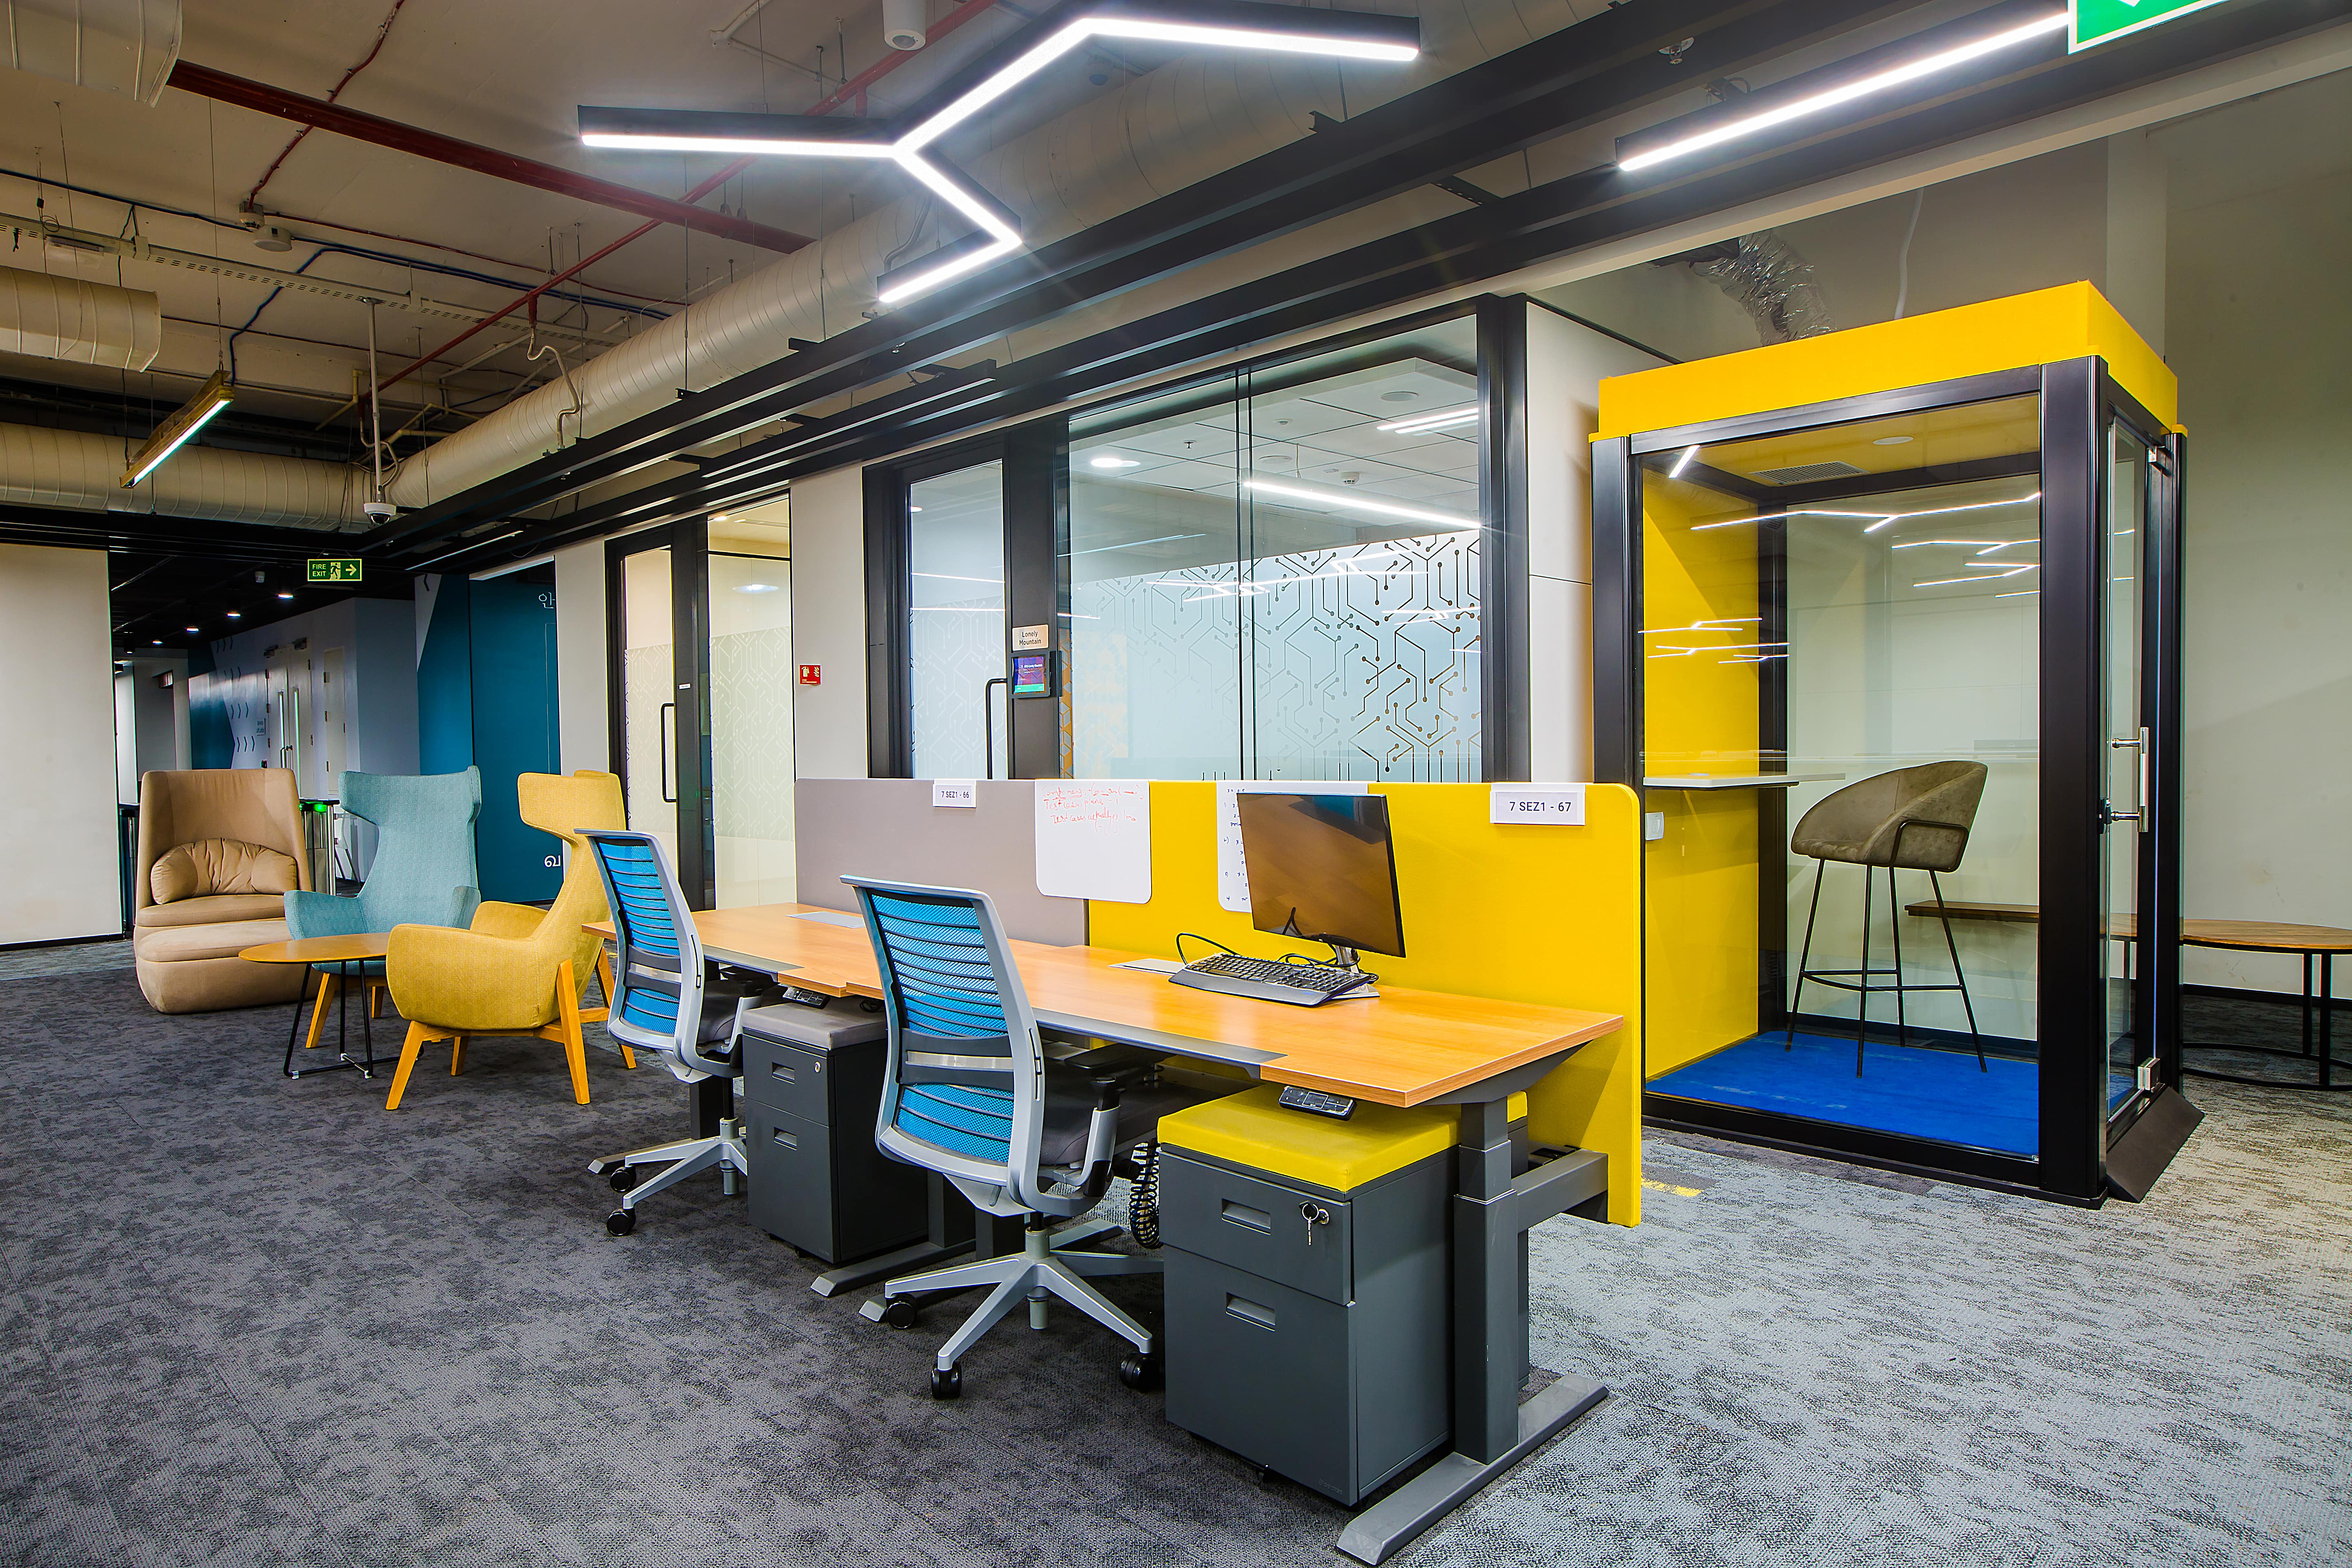 Ergonomic chairs and workstations and flexible seating options make the Rubric India office one of the best workplace designs